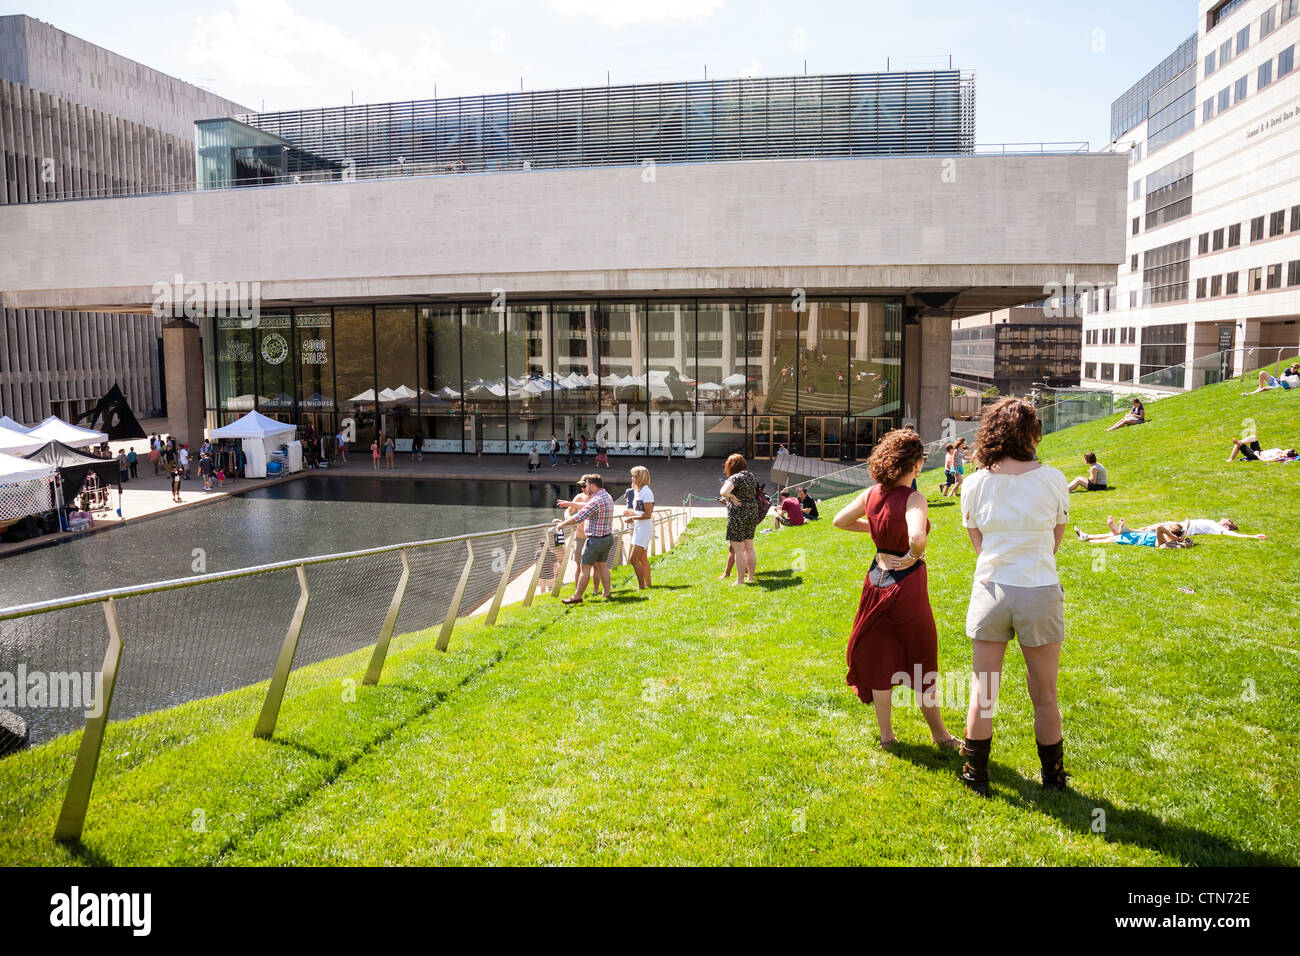 Laurie M Tisch Illumination Lawn In The Hearst Plaza At